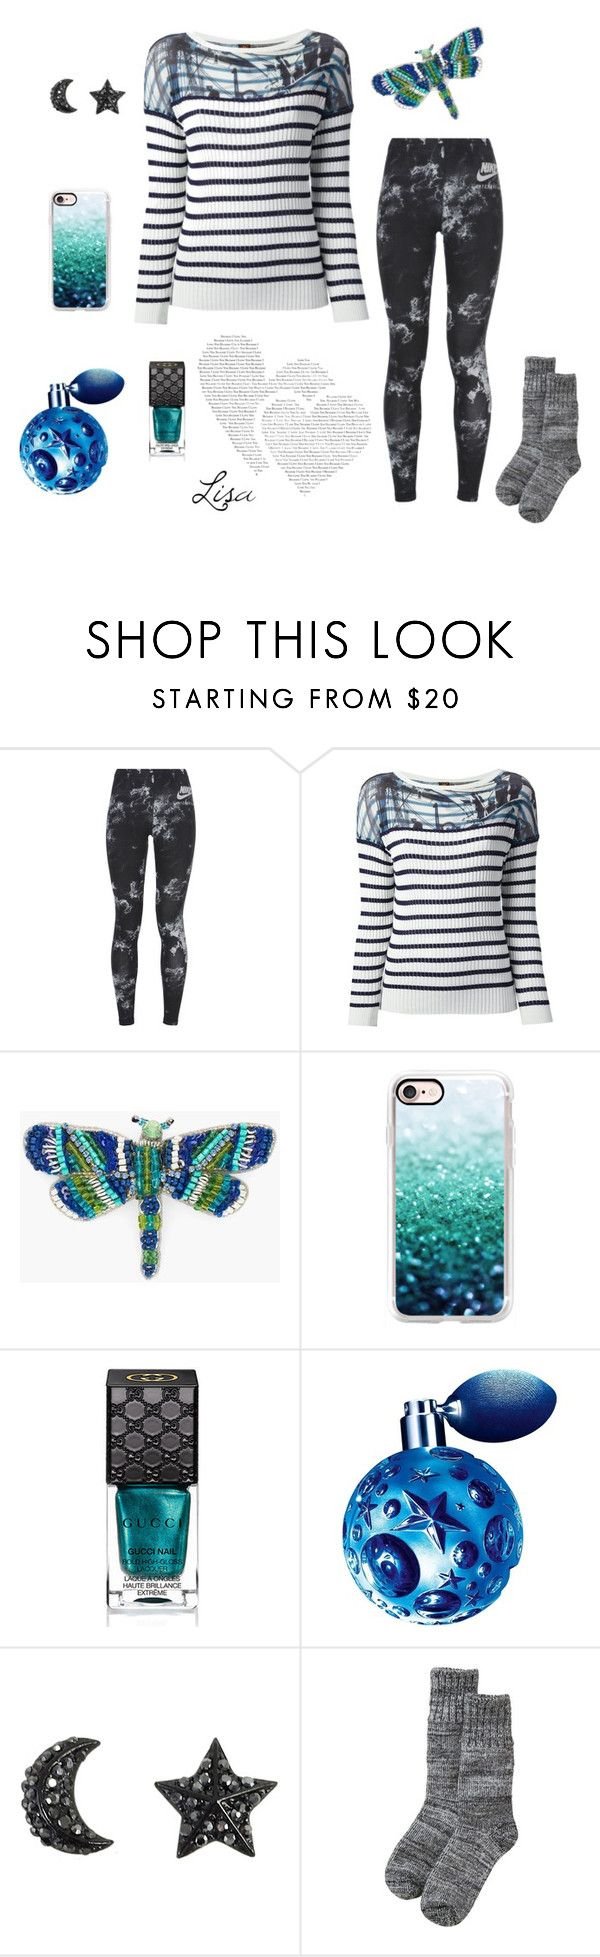 """""""Up hill Climb"""" by coolmommy44 ❤ liked on Polyvore featuring NIKE, Jean Paul Gaultier Soleil, Chico's, Casetify, Gucci and Thierry Mugler"""